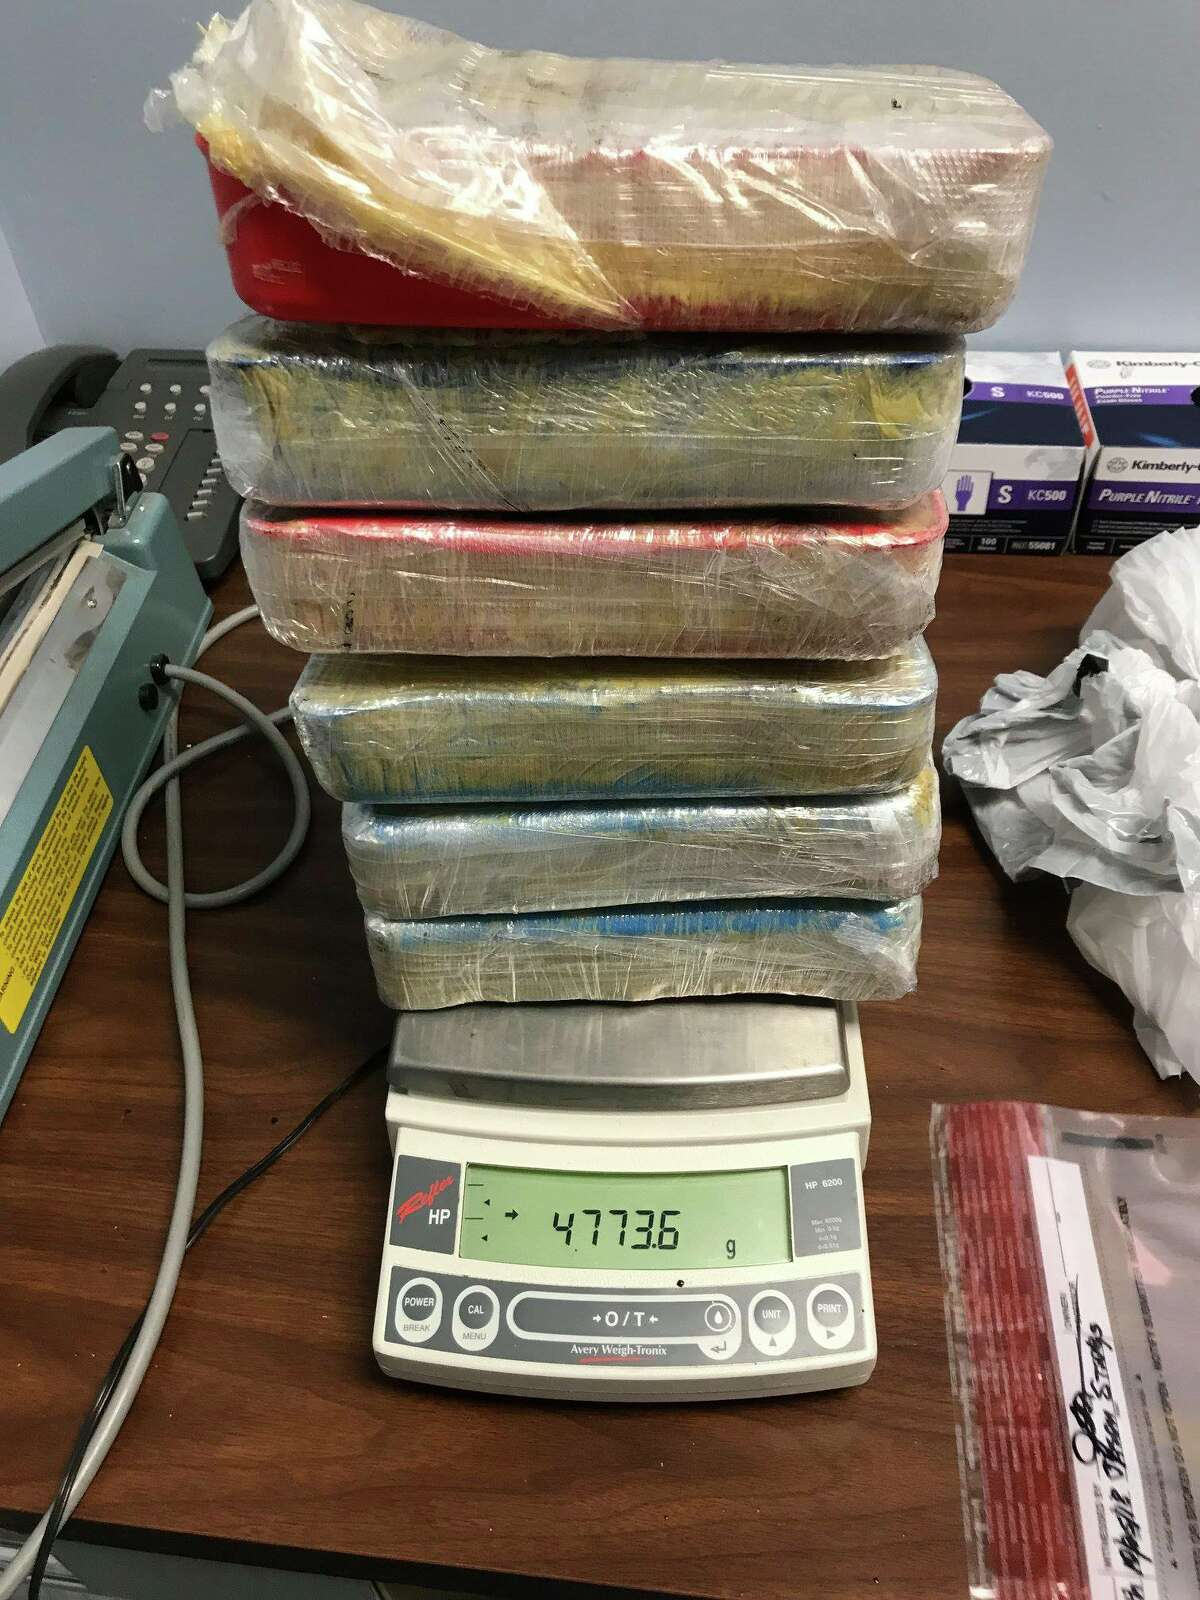 The Bexar County Sheriff's Office seized nearly 40 pounds of methamphetamine in a drug bust on Oct. 30, 2018.